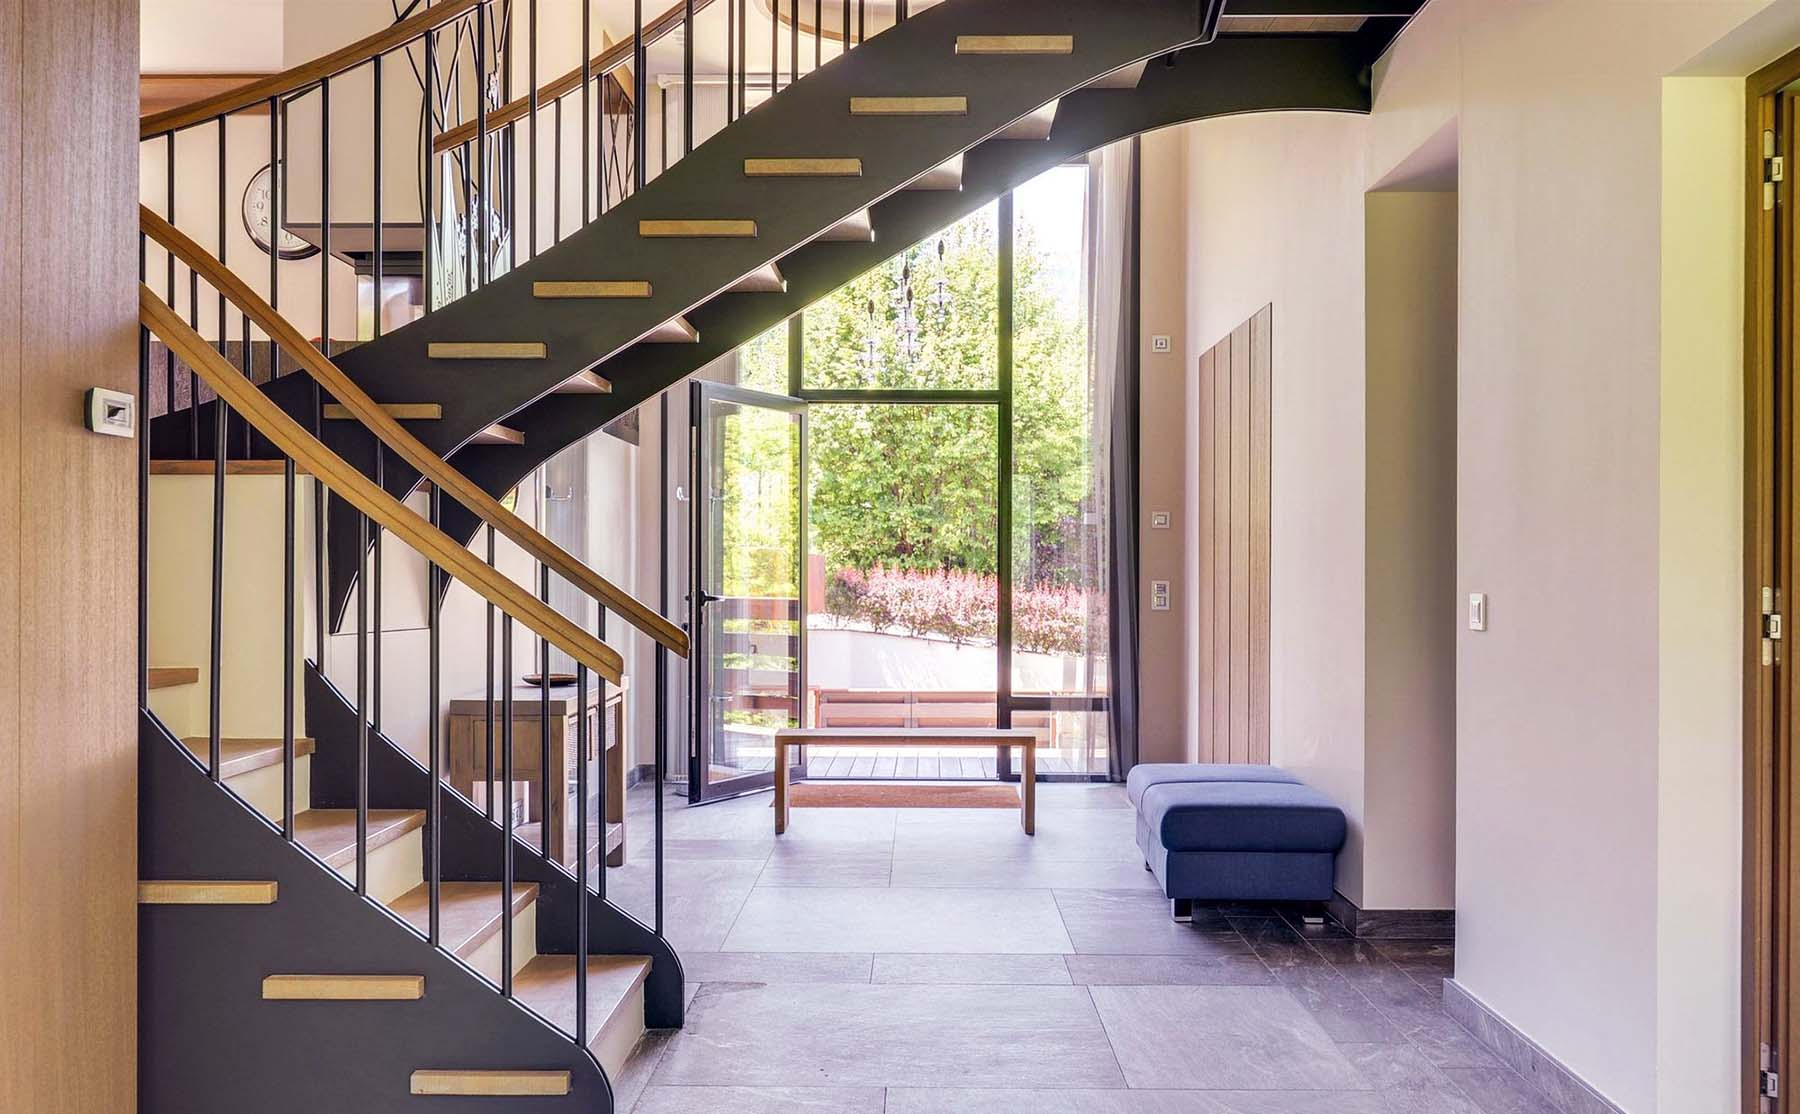 Cool modern staircase with black metal frame and floating wood stairs. Black metal balusters and wood hand rail. Winding staircase style.